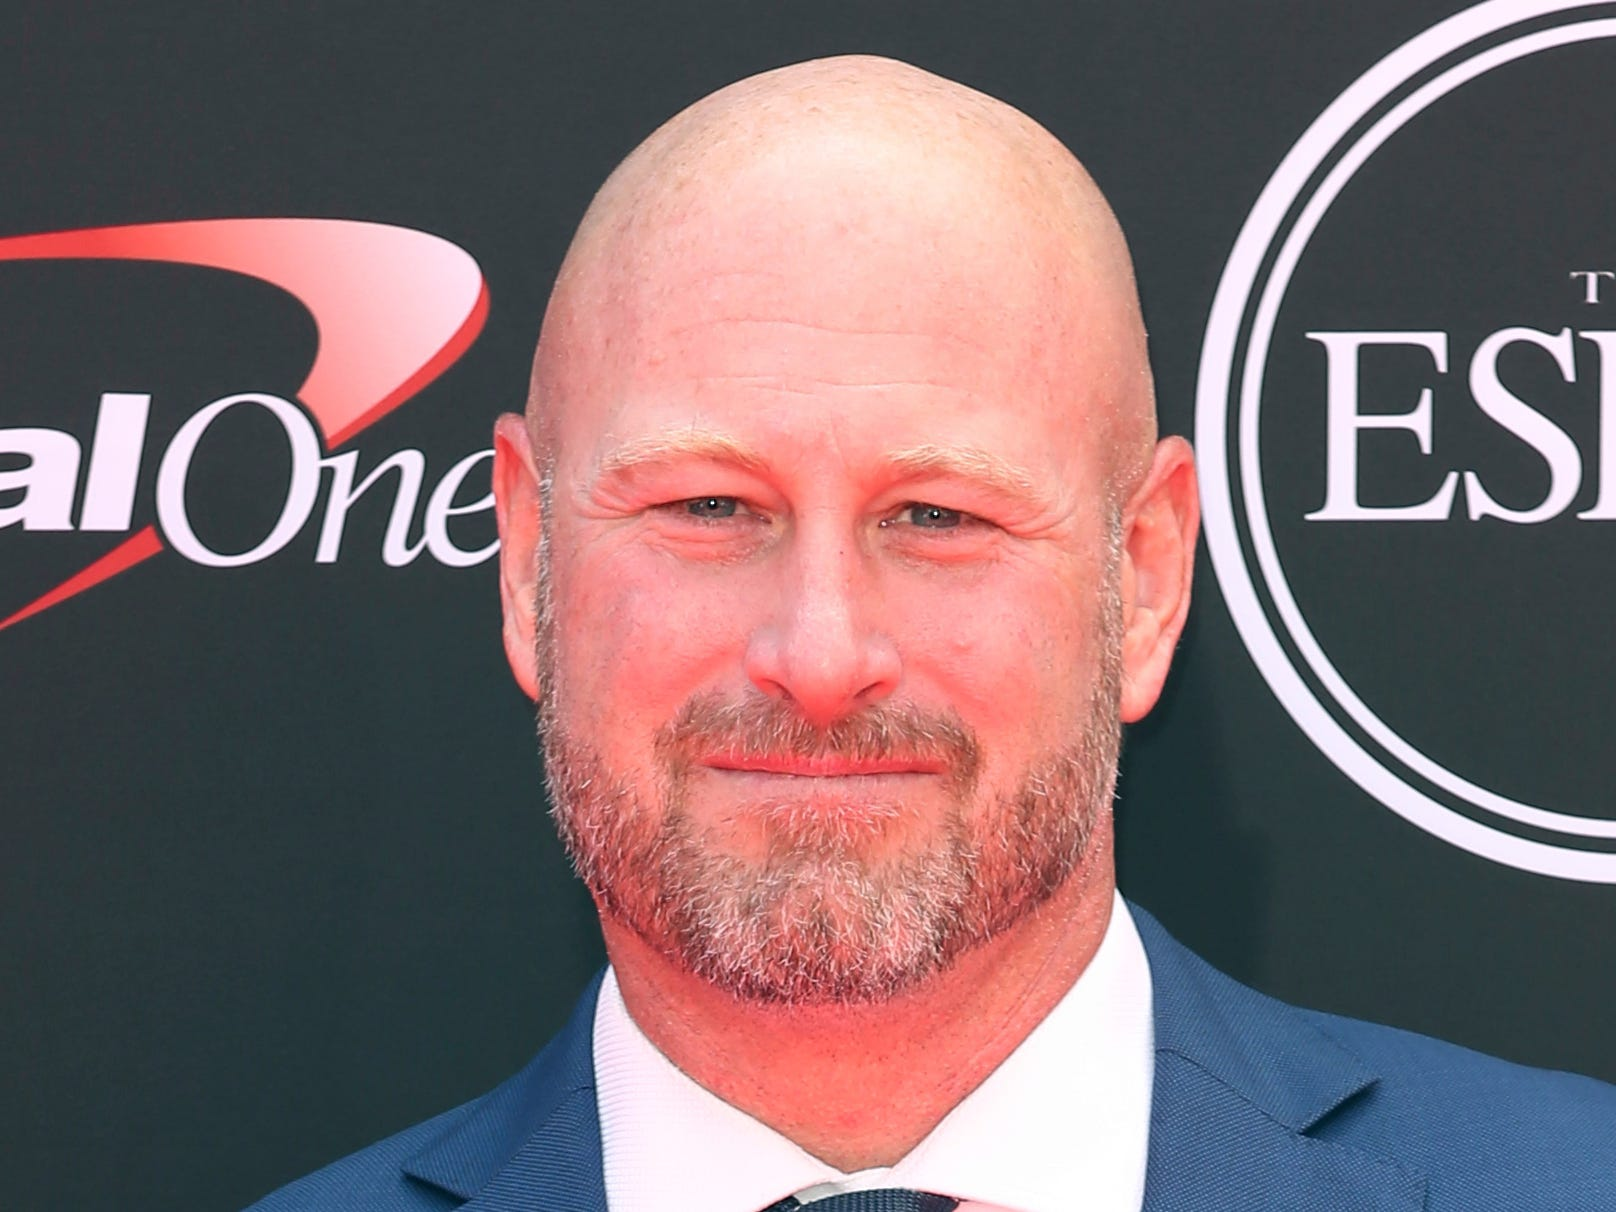 Former NFL football player Trent Dilfer arrives at the ESPY Awards at the Microsoft Theater on Wednesday, July 18, 2018, in Los Angeles. (Photo by Willy Sanjuan/Invision/AP)